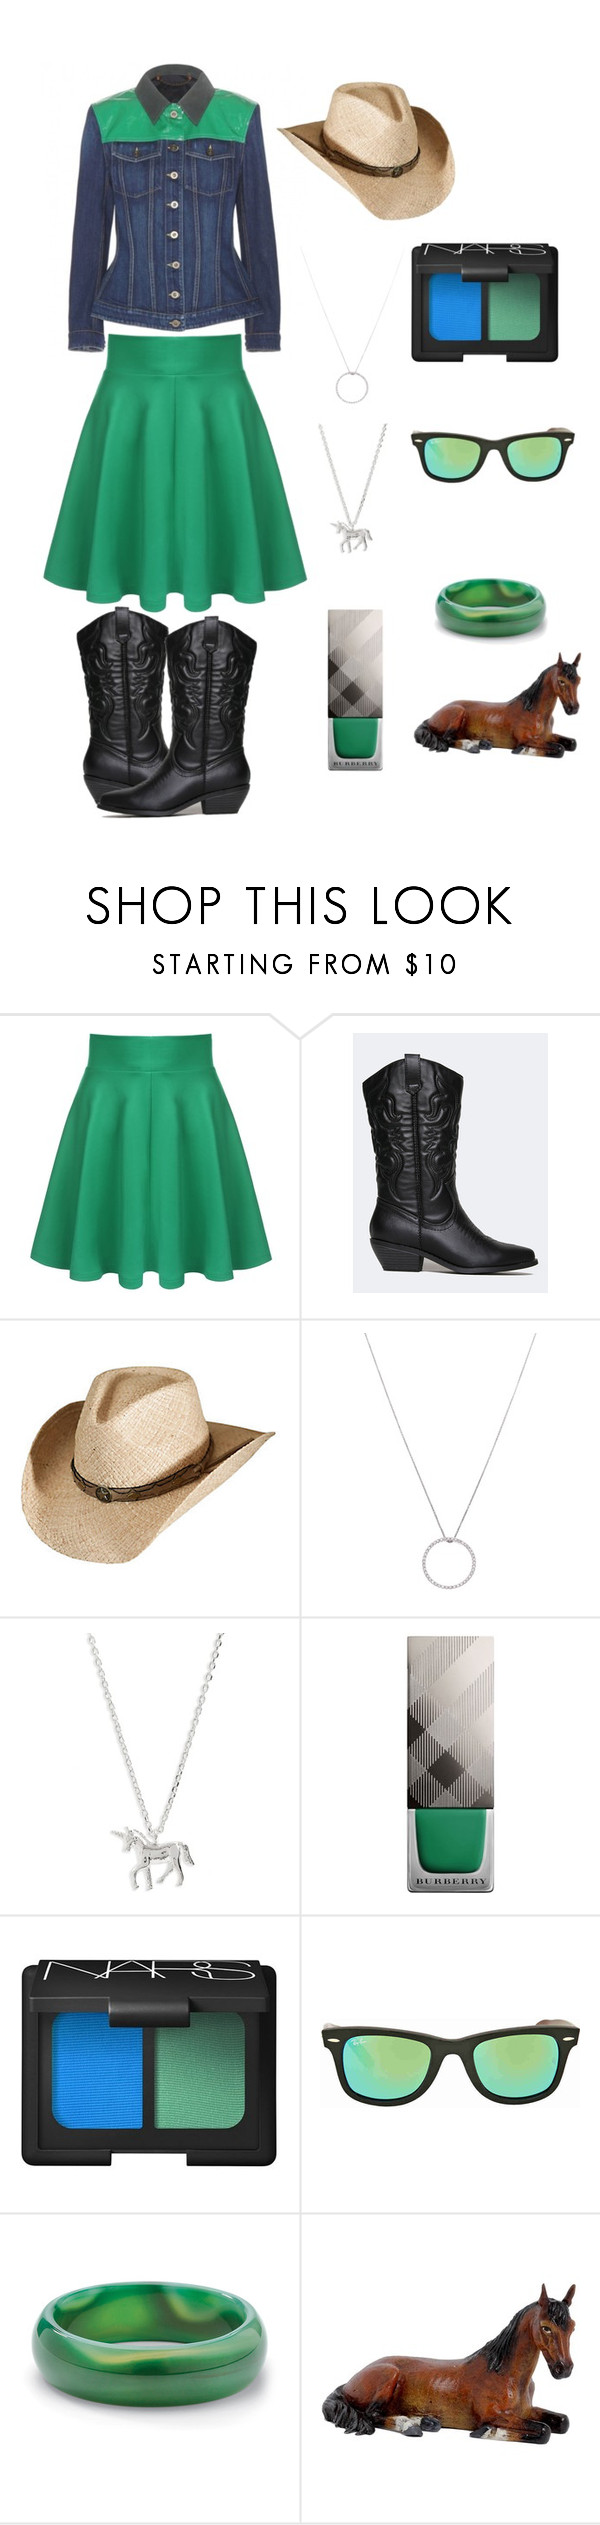 """""""Turquoise Rancher"""" by jdmartinrd on Polyvore featuring Soda, Overland Sheepskin Co., Roberto Coin, Estella Bartlett, Burberry, NARS Cosmetics, Ray-Ban and Palm Beach Jewelry"""